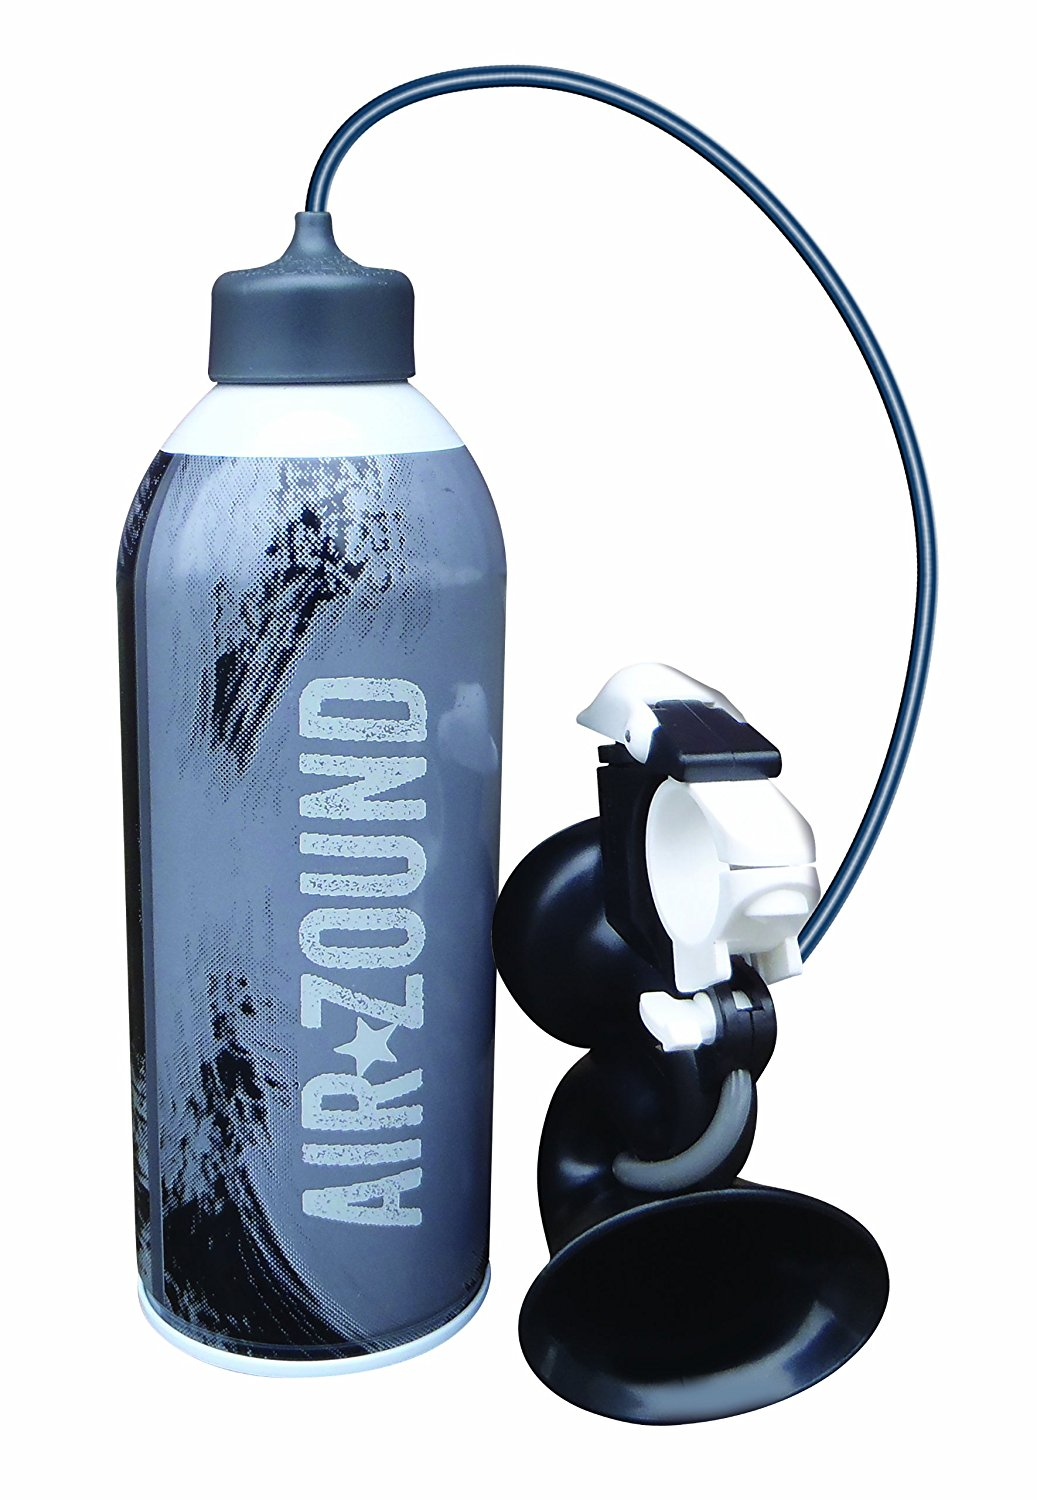 Delta Cycle Airzound Very Loud Bike Horn -  Rechargeable Air Horn Siren Super dB, Refills with Bike Pump